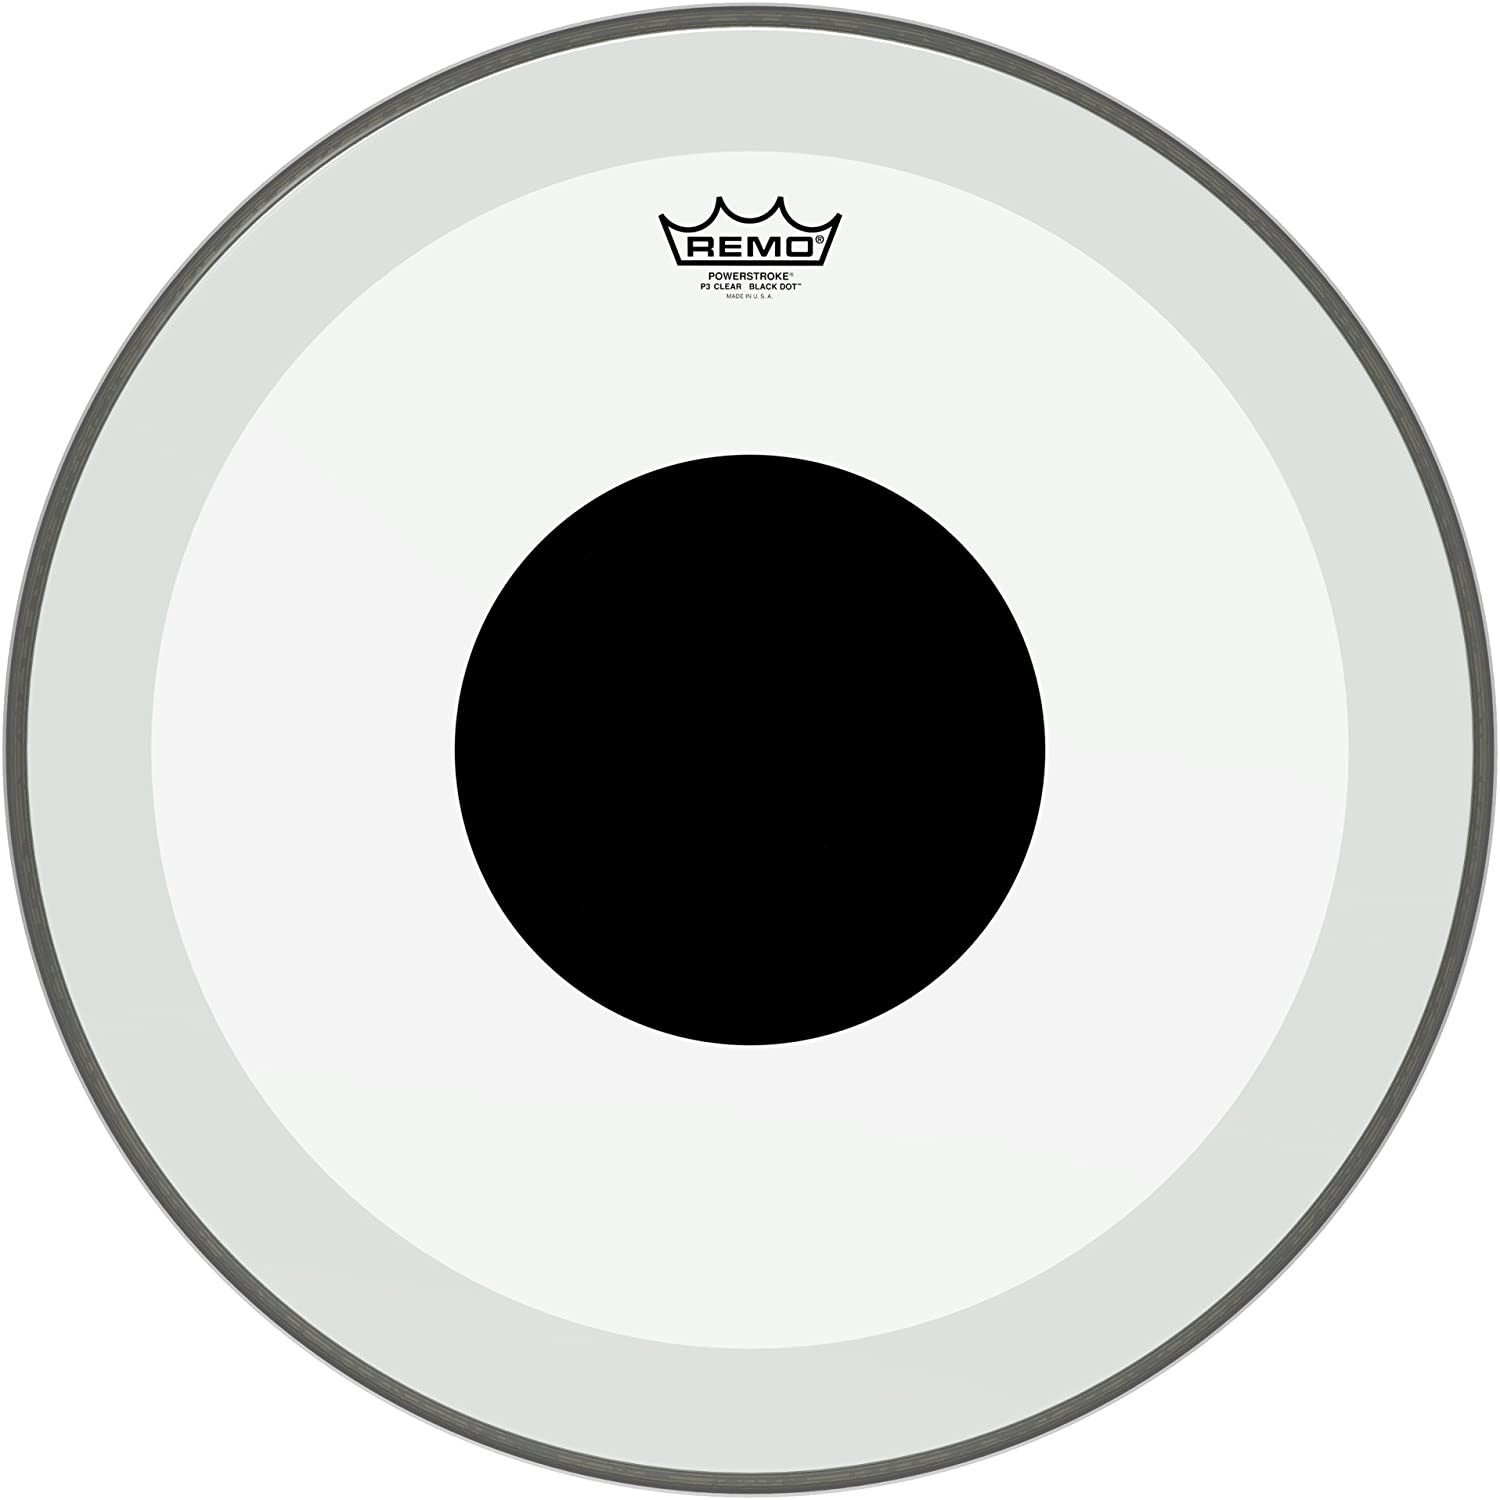 Remo P31320-10 Clear Powerstroke 3 Bass Drum Head - 20-Inch - Black Dot 71NeF2VCLjL